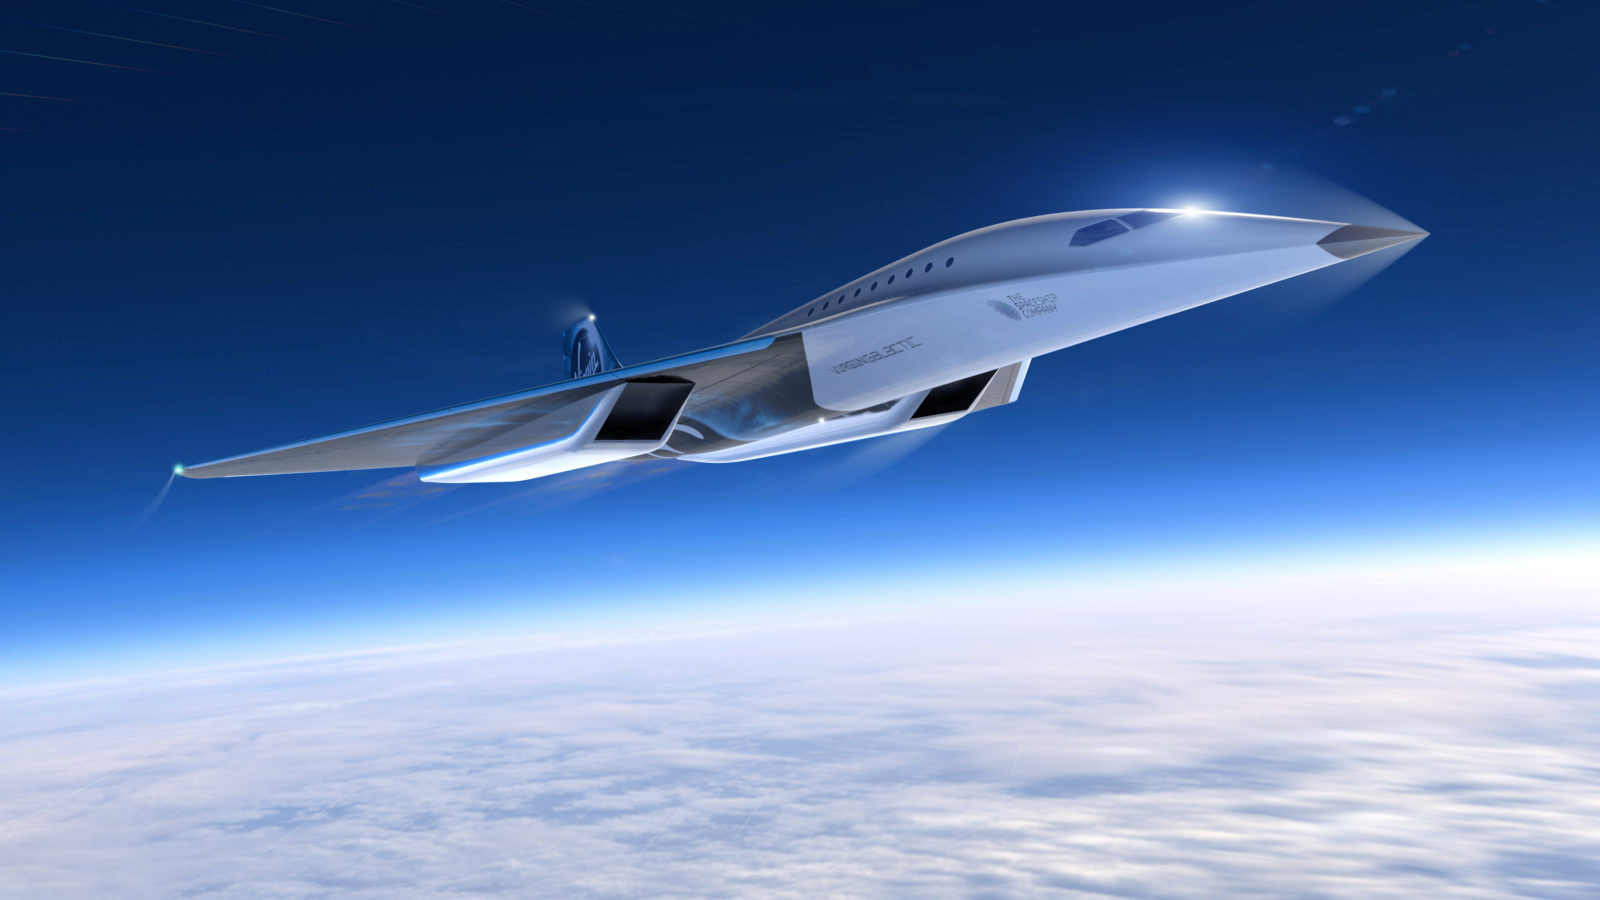 L'avion supersonique de Virgin Galactic